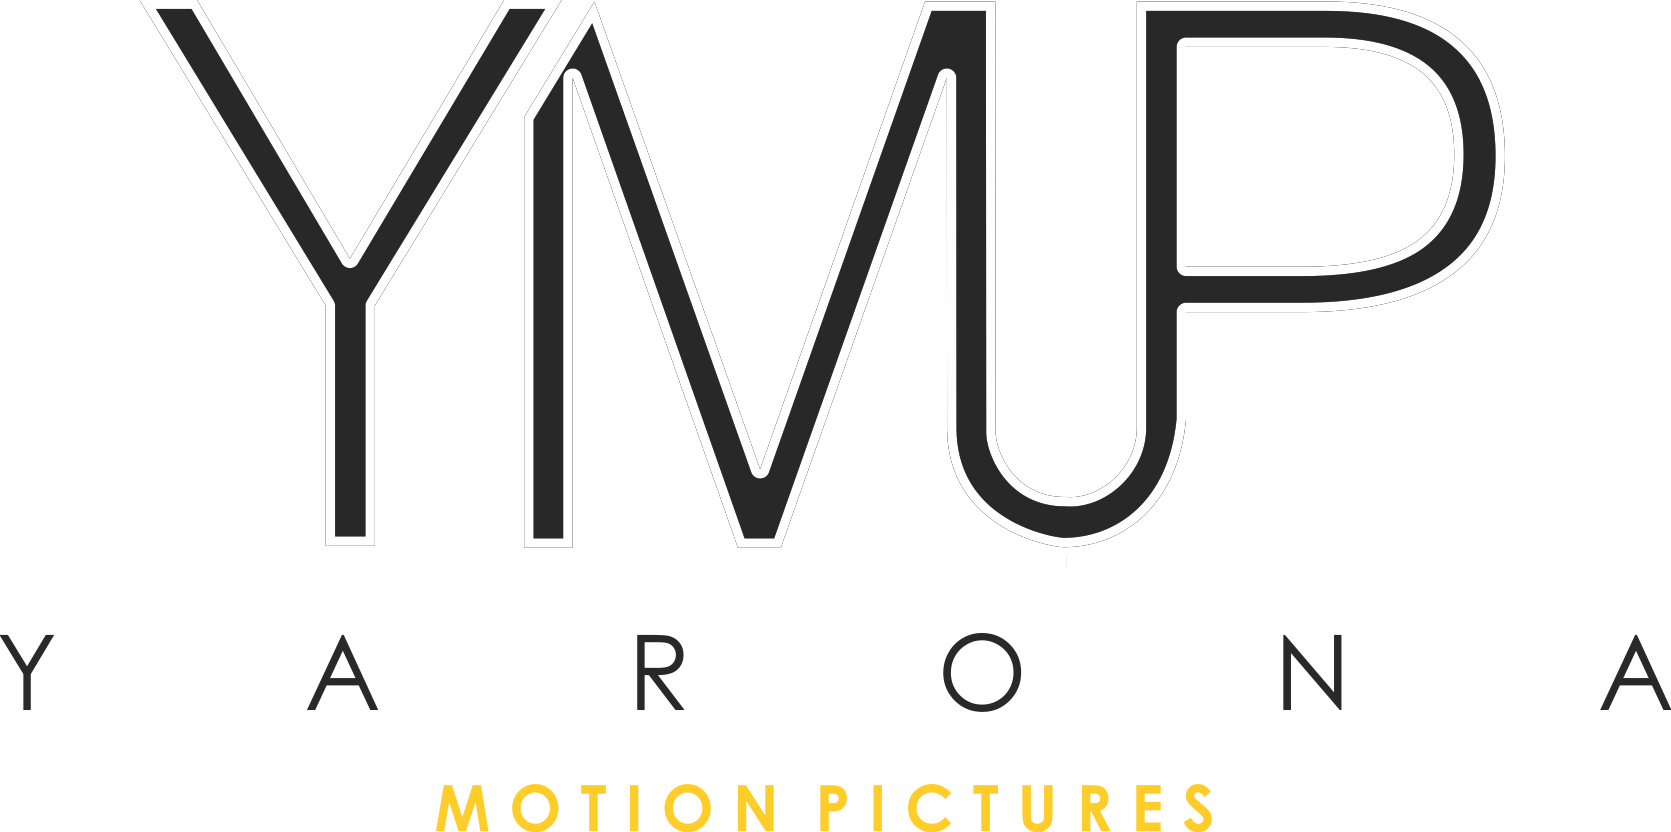 Yarona Motion Pictures